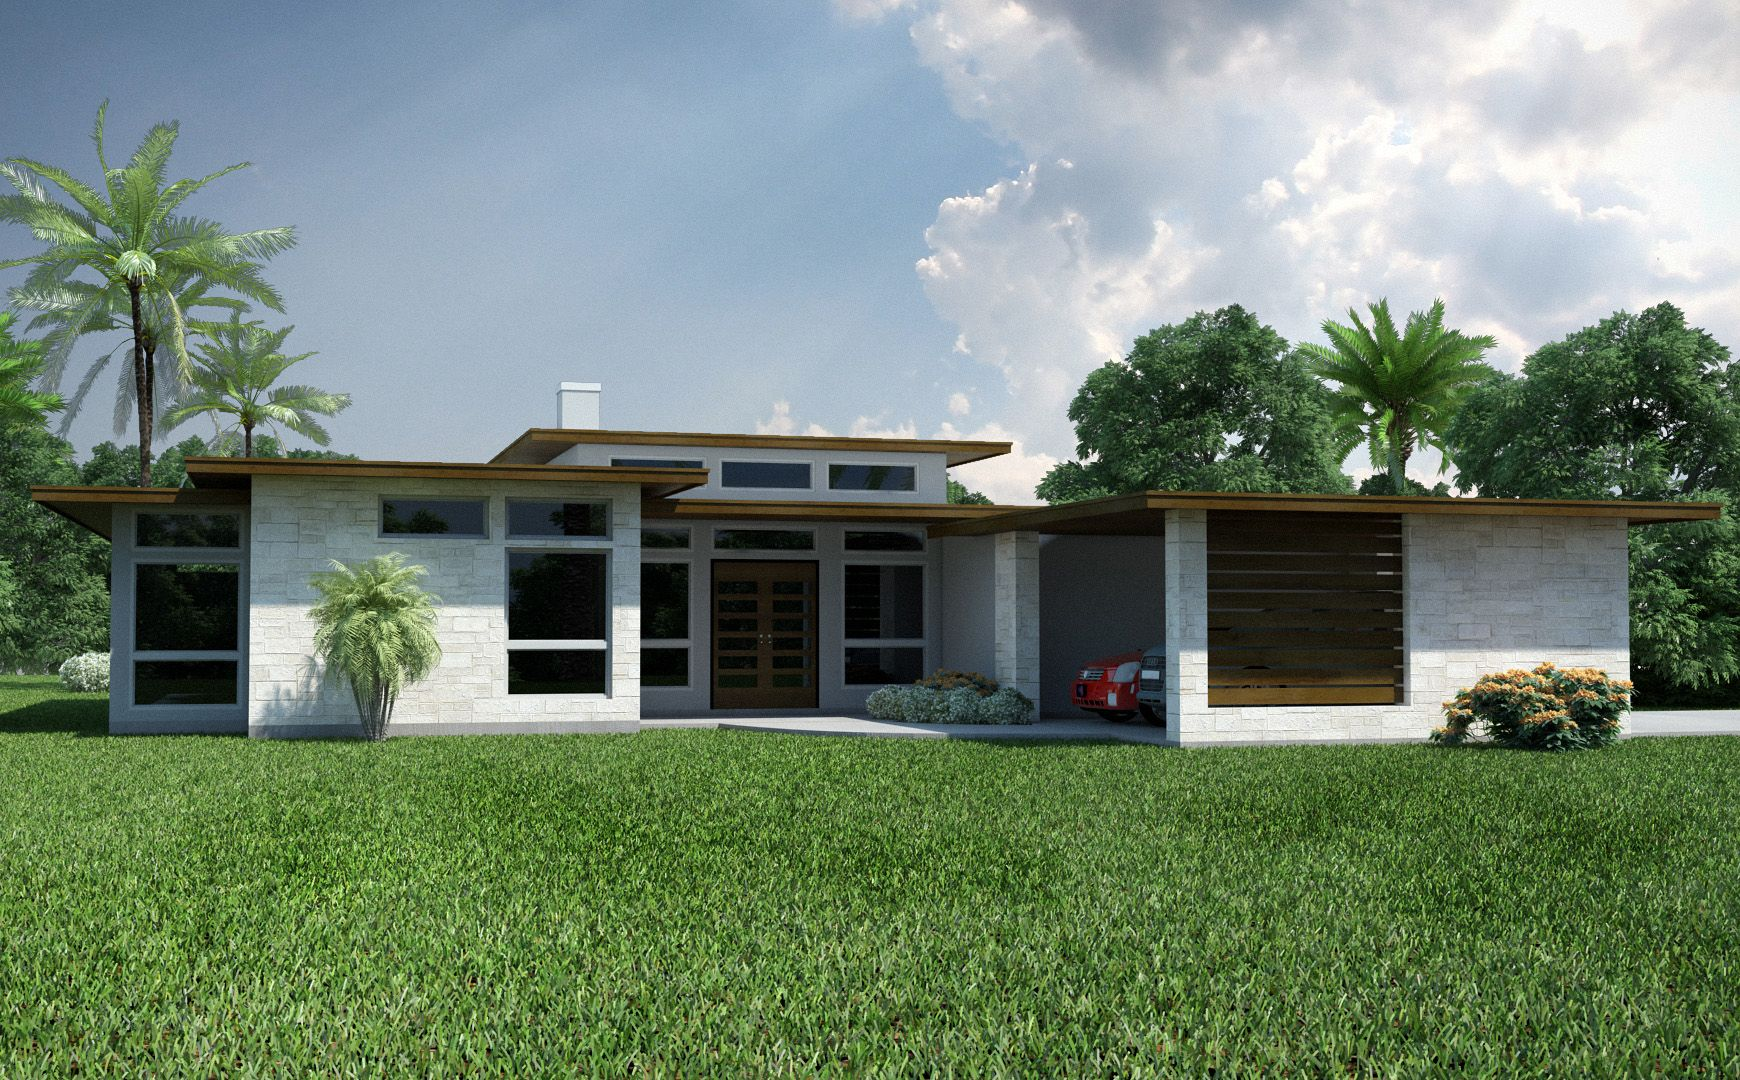 10 Gorgeous Ranch House Plans Ideas Ranch House Plans Ranch Style Homes Simple Ranch House Plans